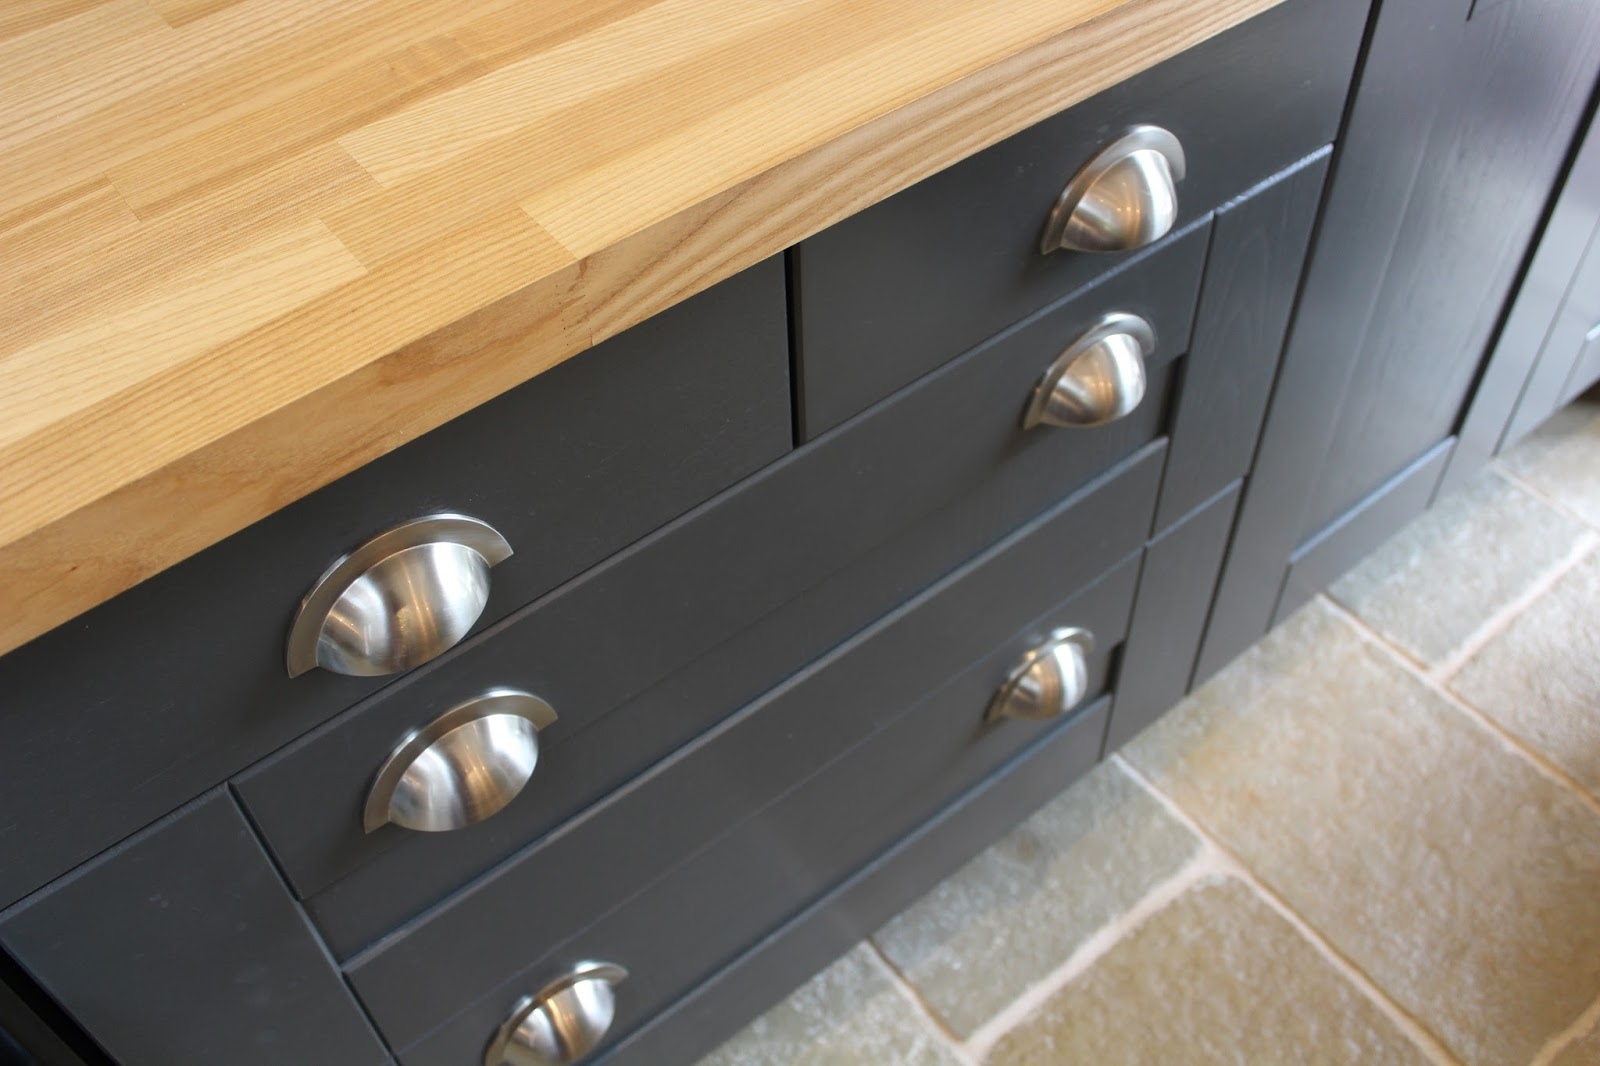 Satin Nickel Cup Drawer Handles in Kitchen